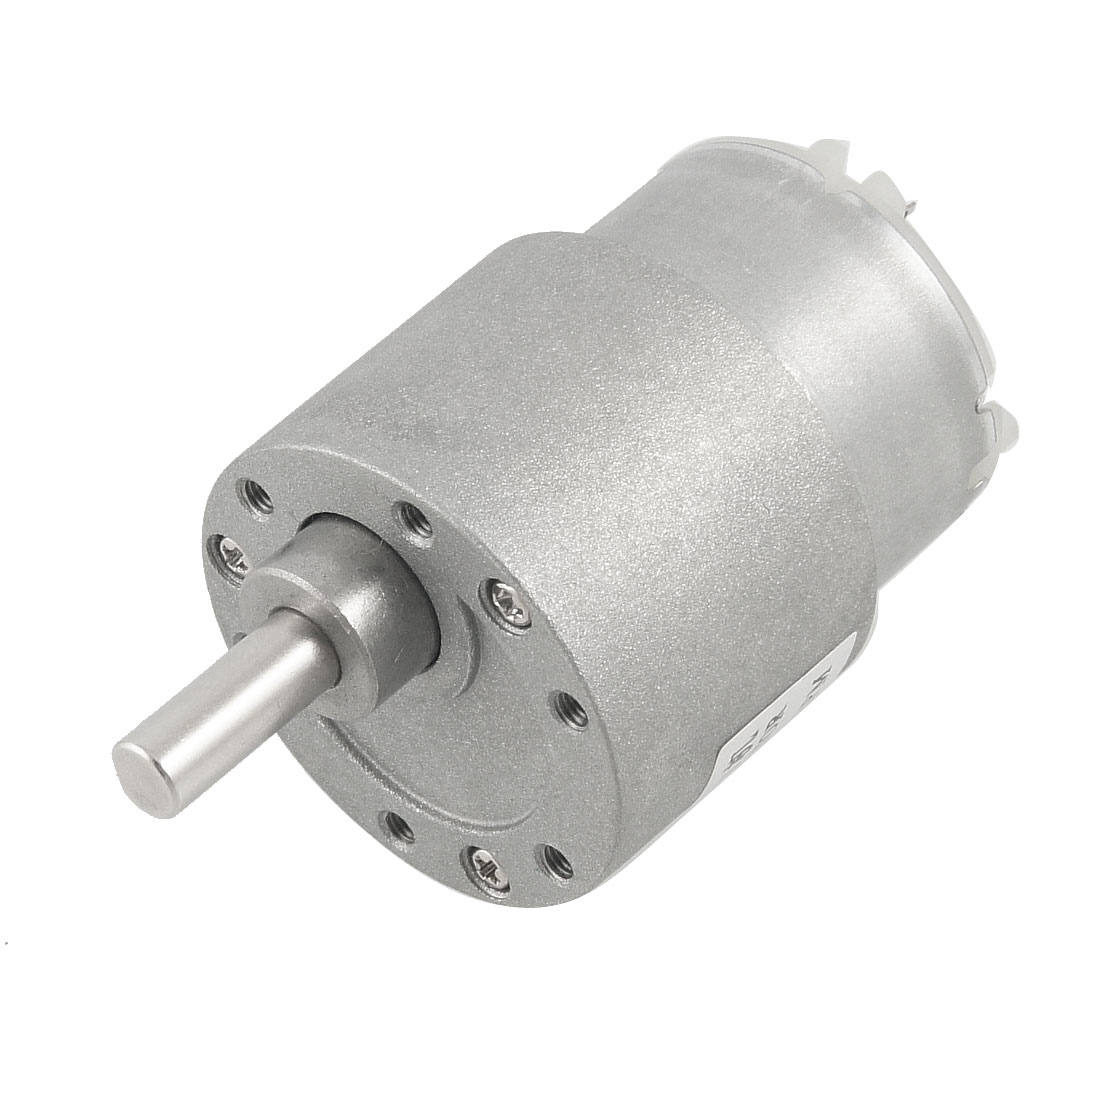 35mm-Motor-Body-Dia-Permanent-Magnetic-Gear-Motor-8-RPM-37GB-80mA-6V-DC